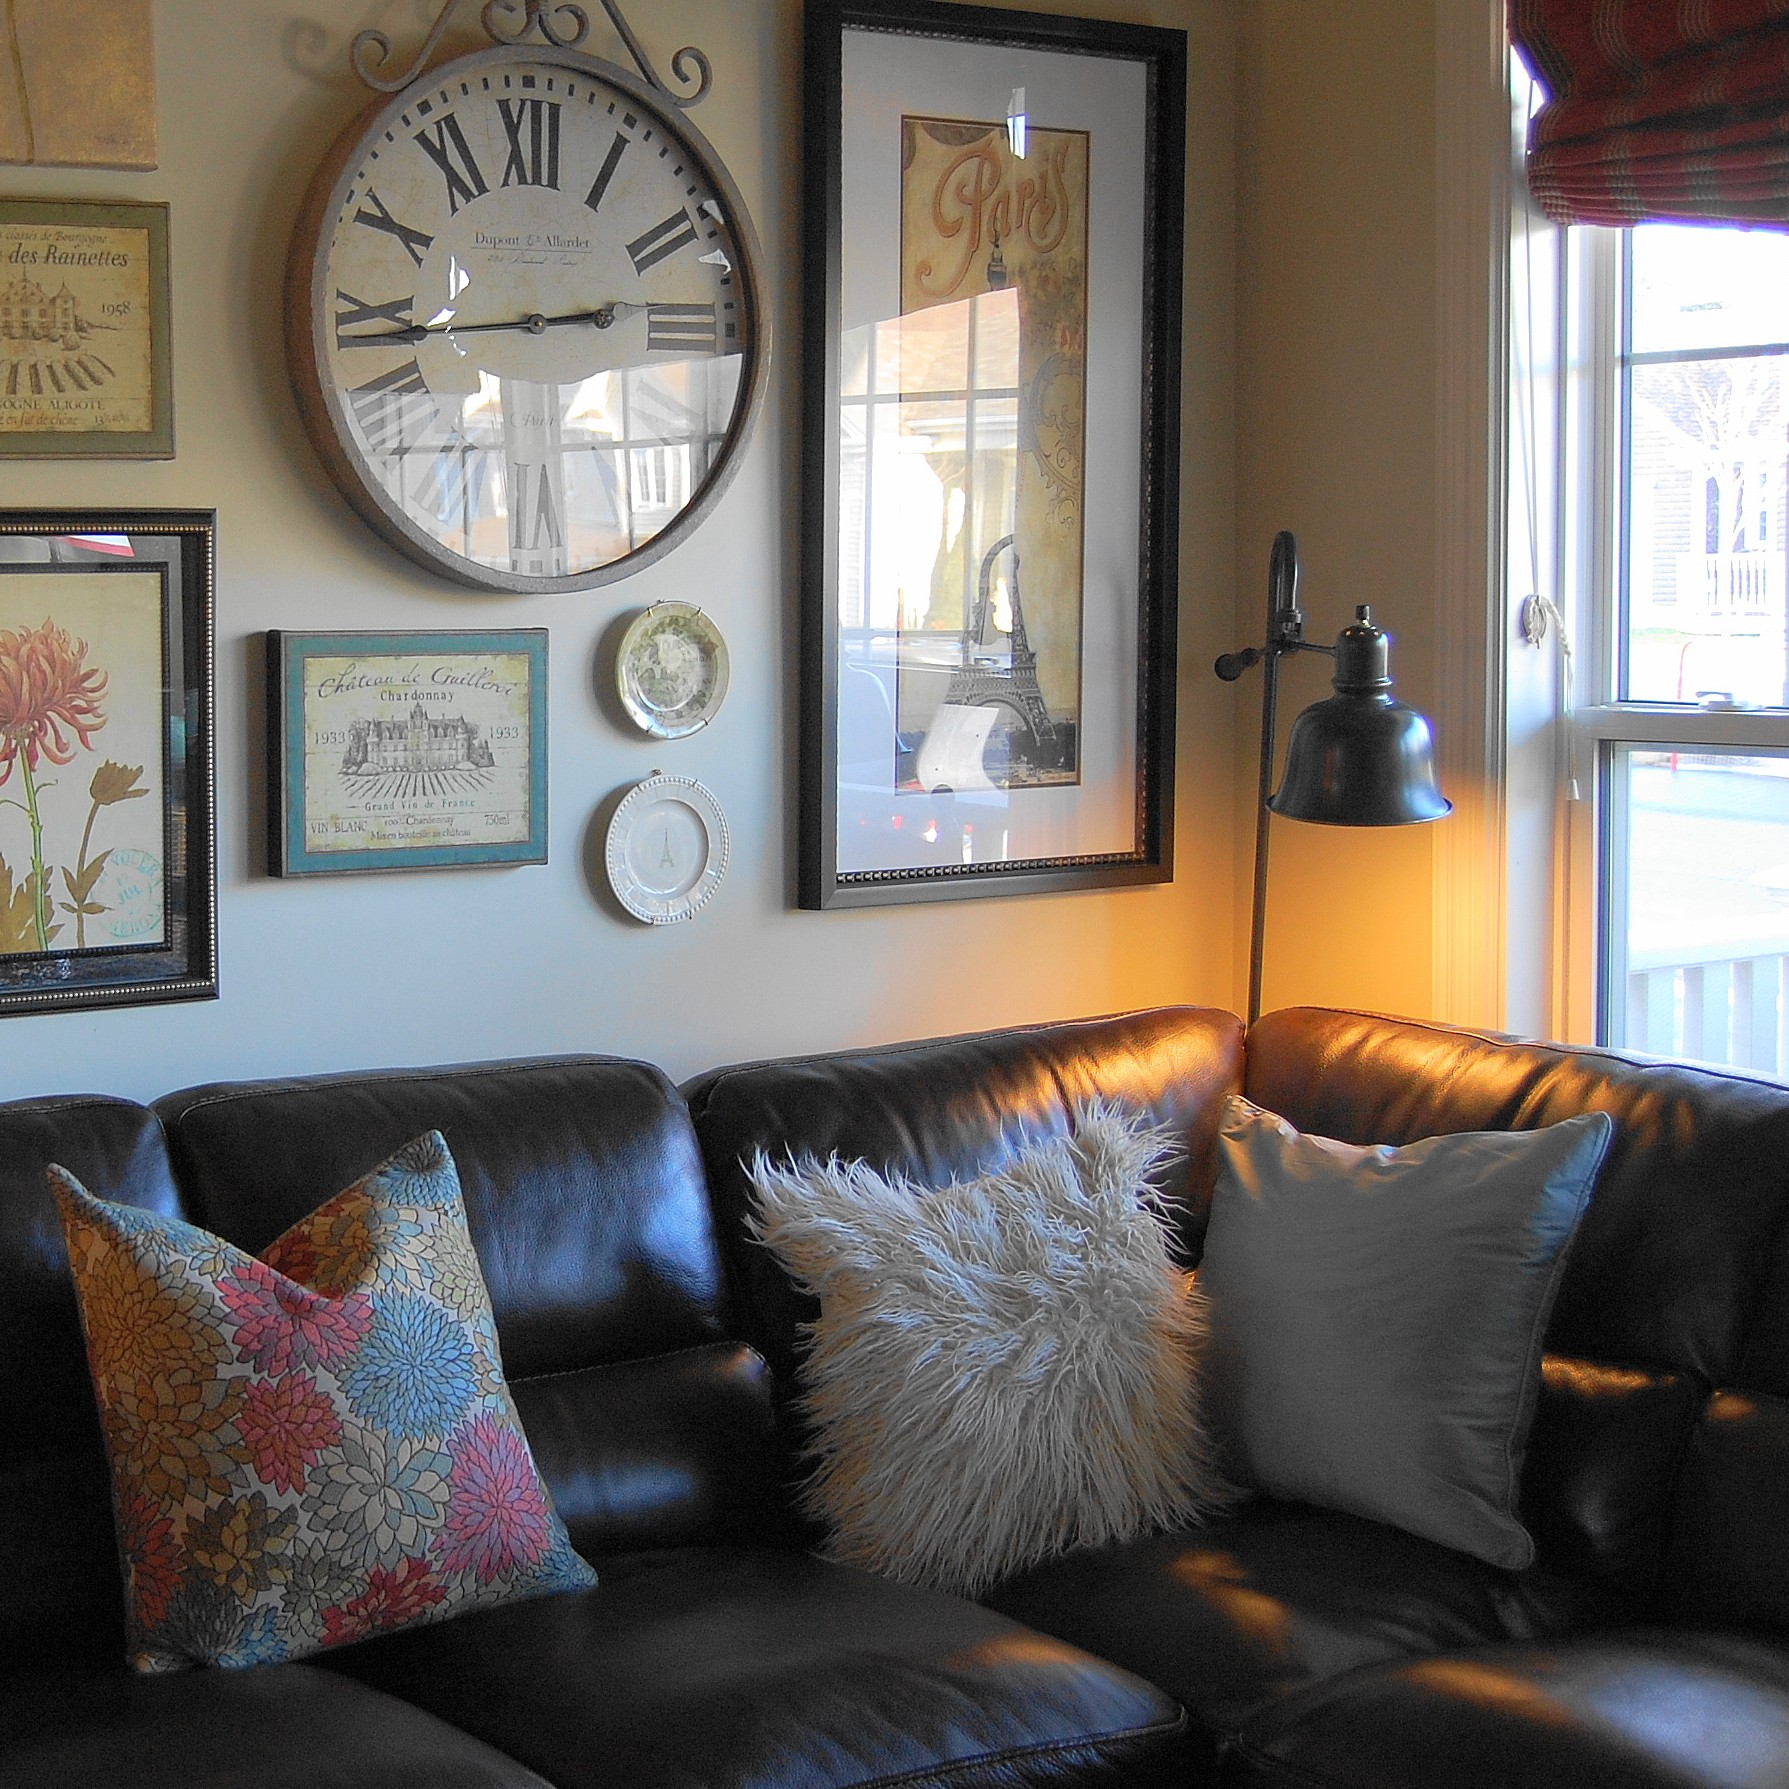 Beauty U0026 The Beast: Decorating With A Sectional Sofa {5 Fab Examples}